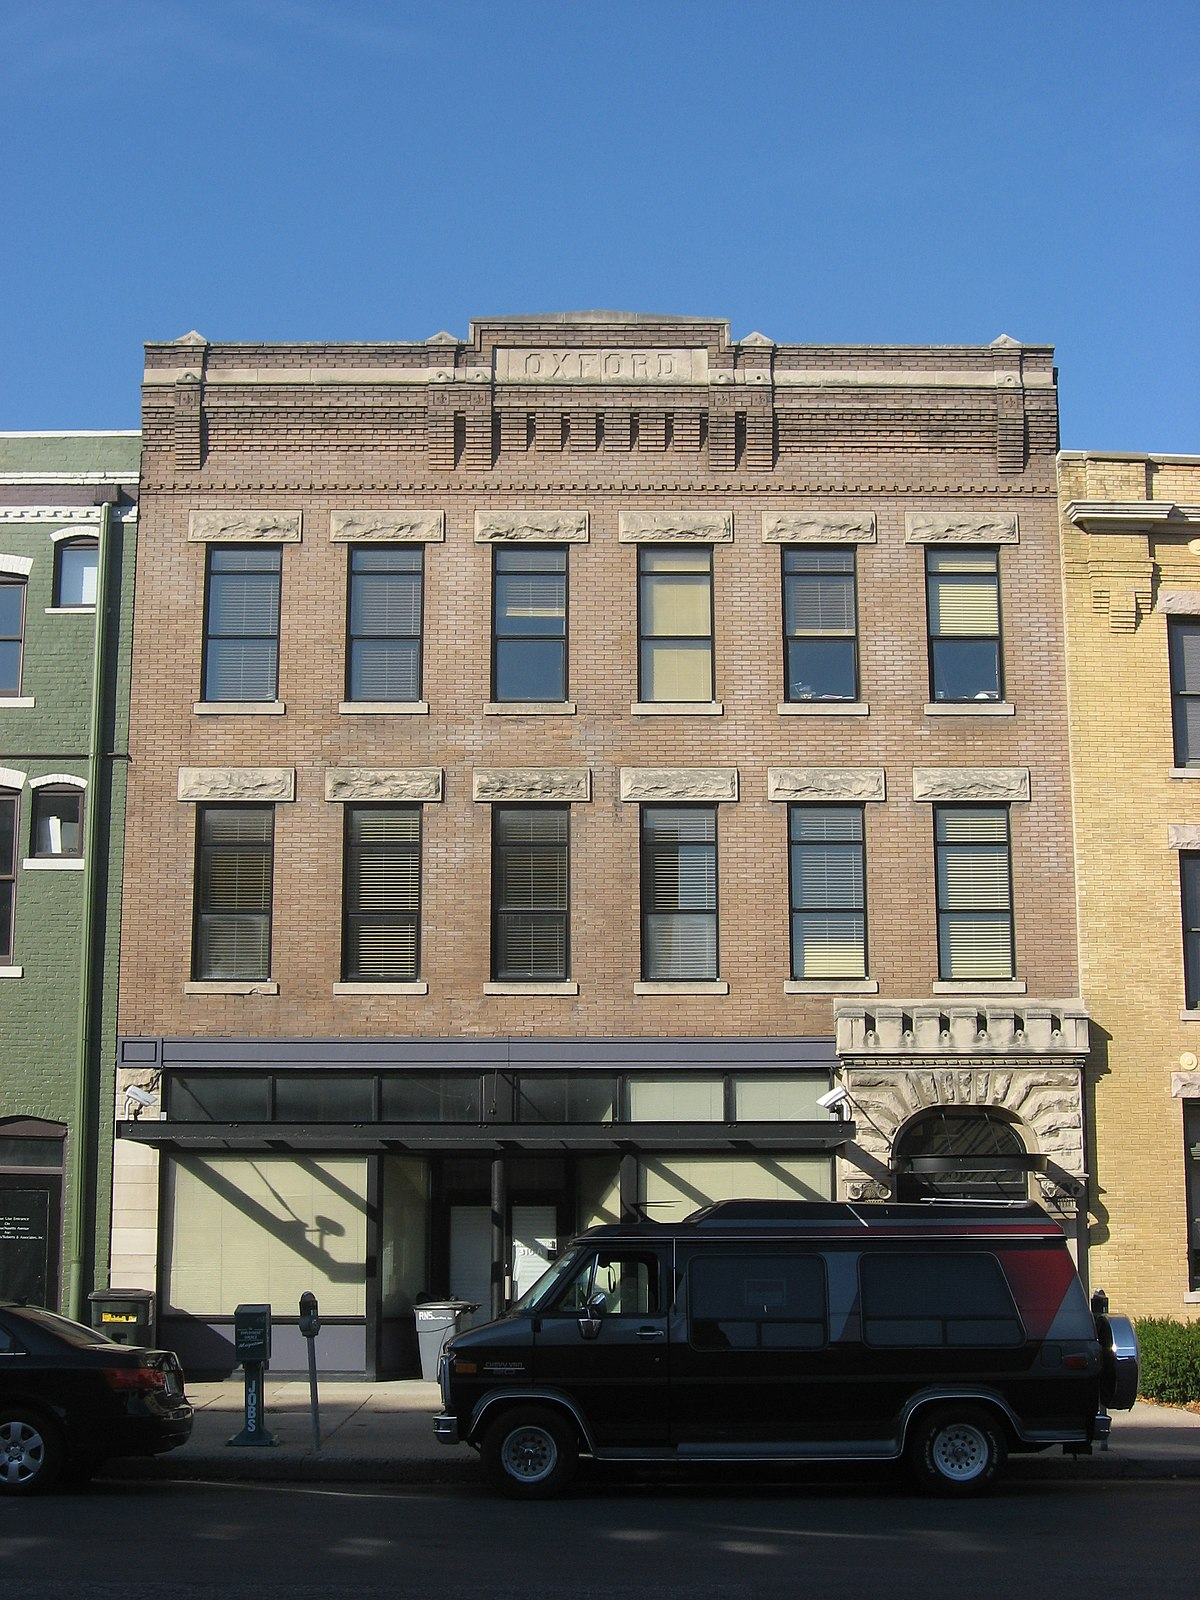 The Indiana Insider Blog: The Oxford (Indianapolis, Indiana)